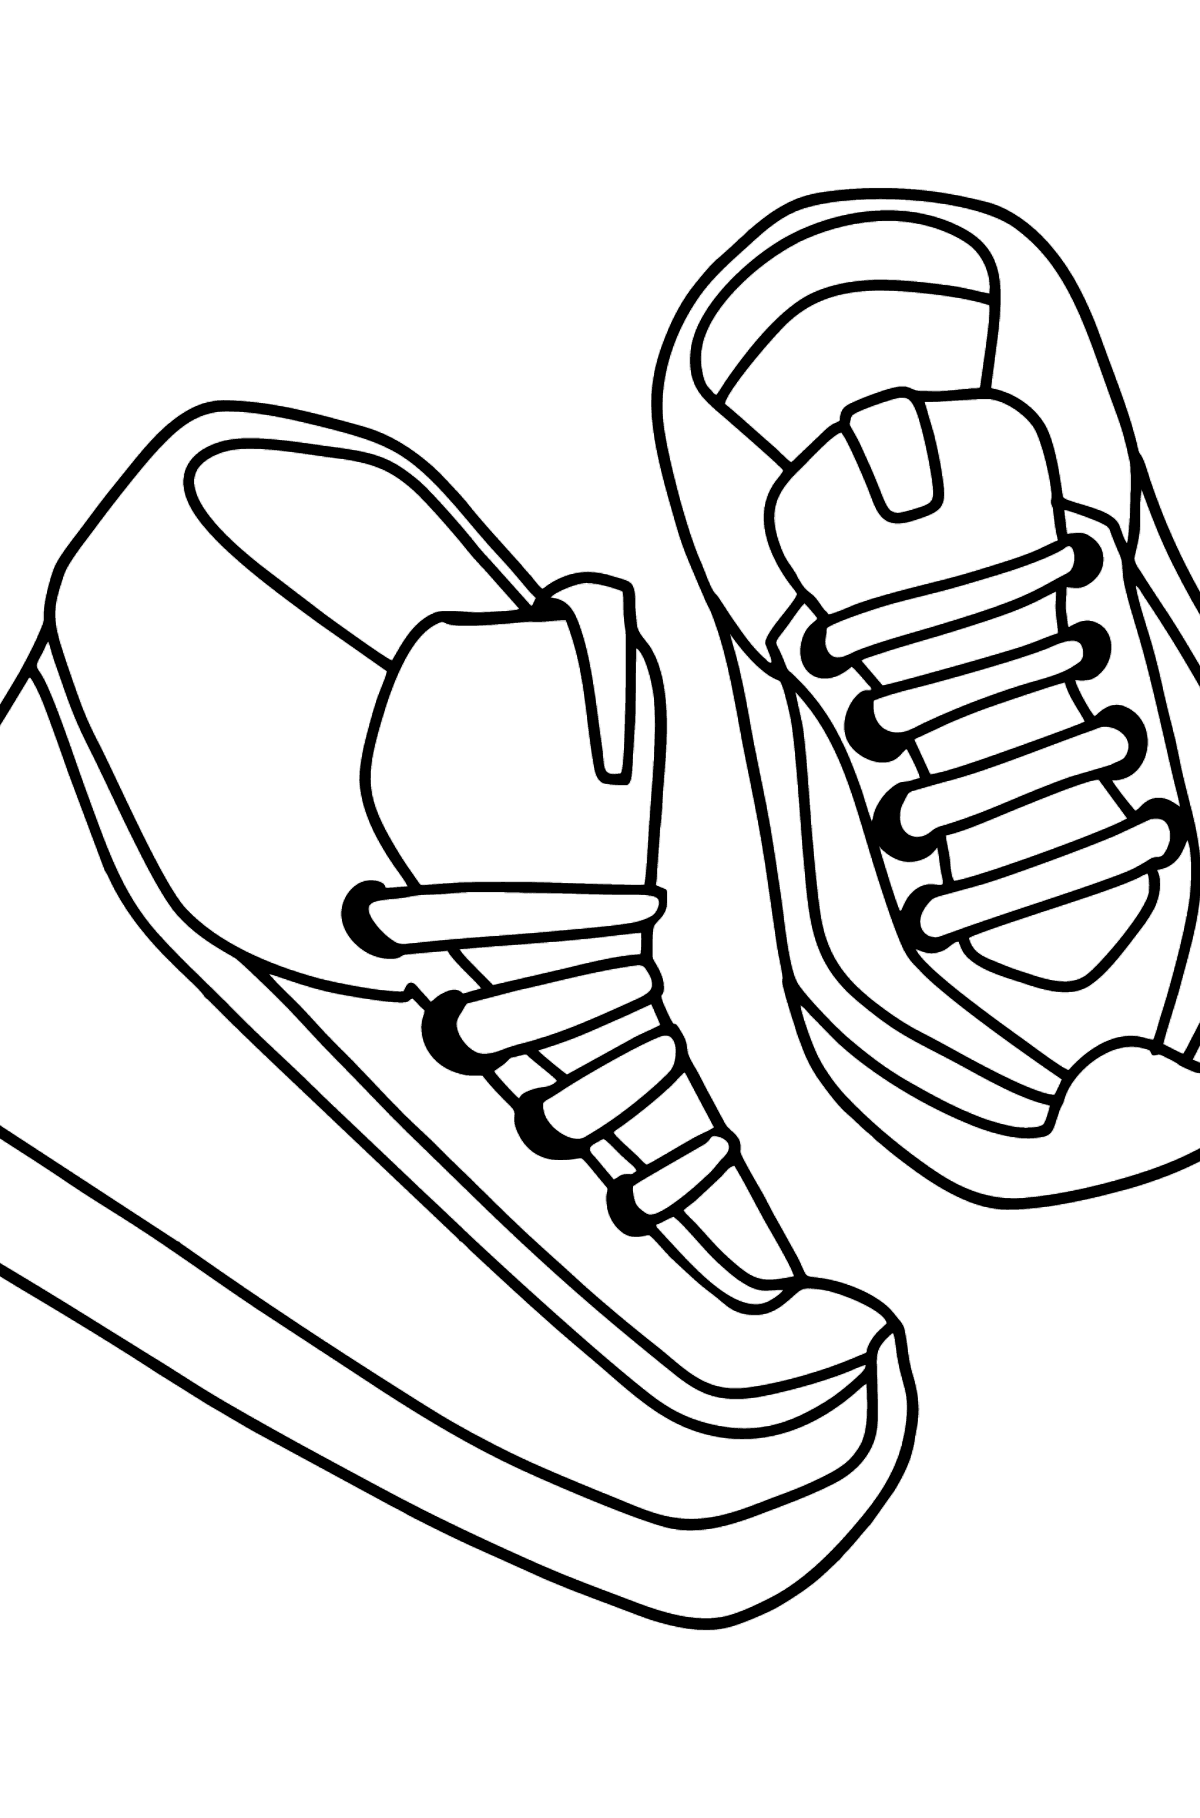 Sneakers coloring page - Coloring Pages for Kids